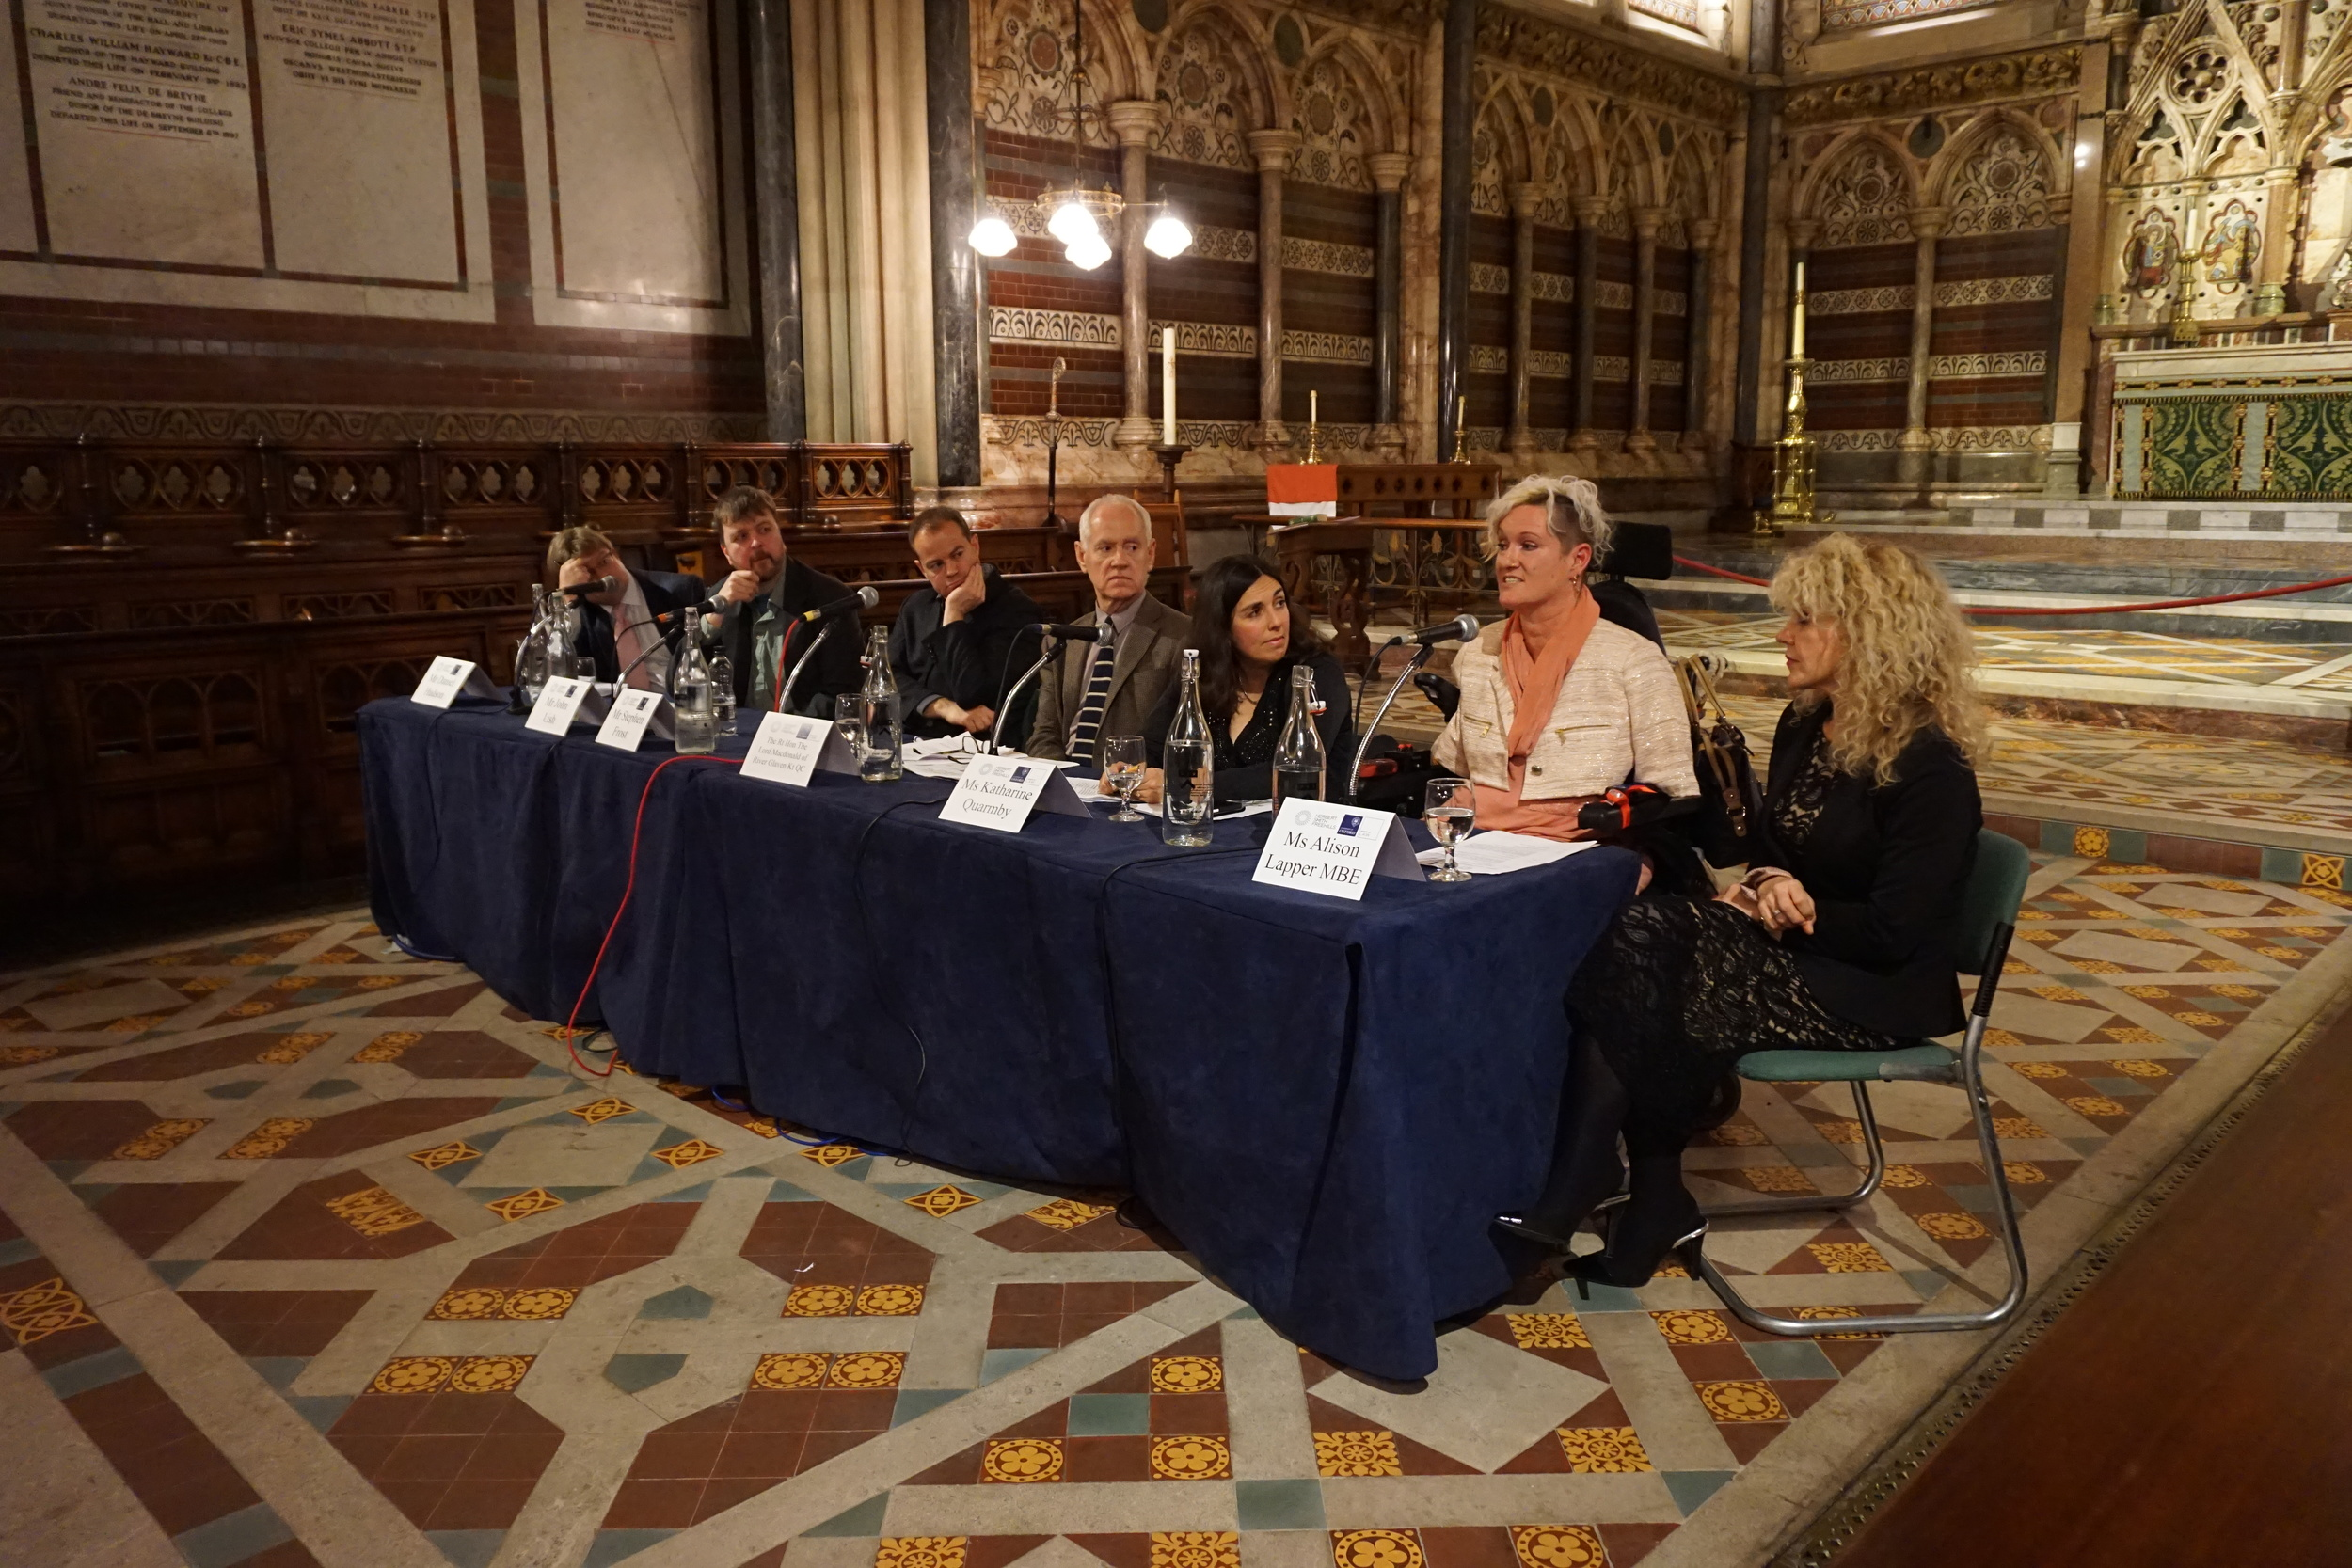 The inaugural conversazione, 2014, in Keble College Chapel with, from left to right, Daniel Hudson, John Lish, Stephen Frost, Lord Macdonald, Katharine Quarmby and Alison Lapper